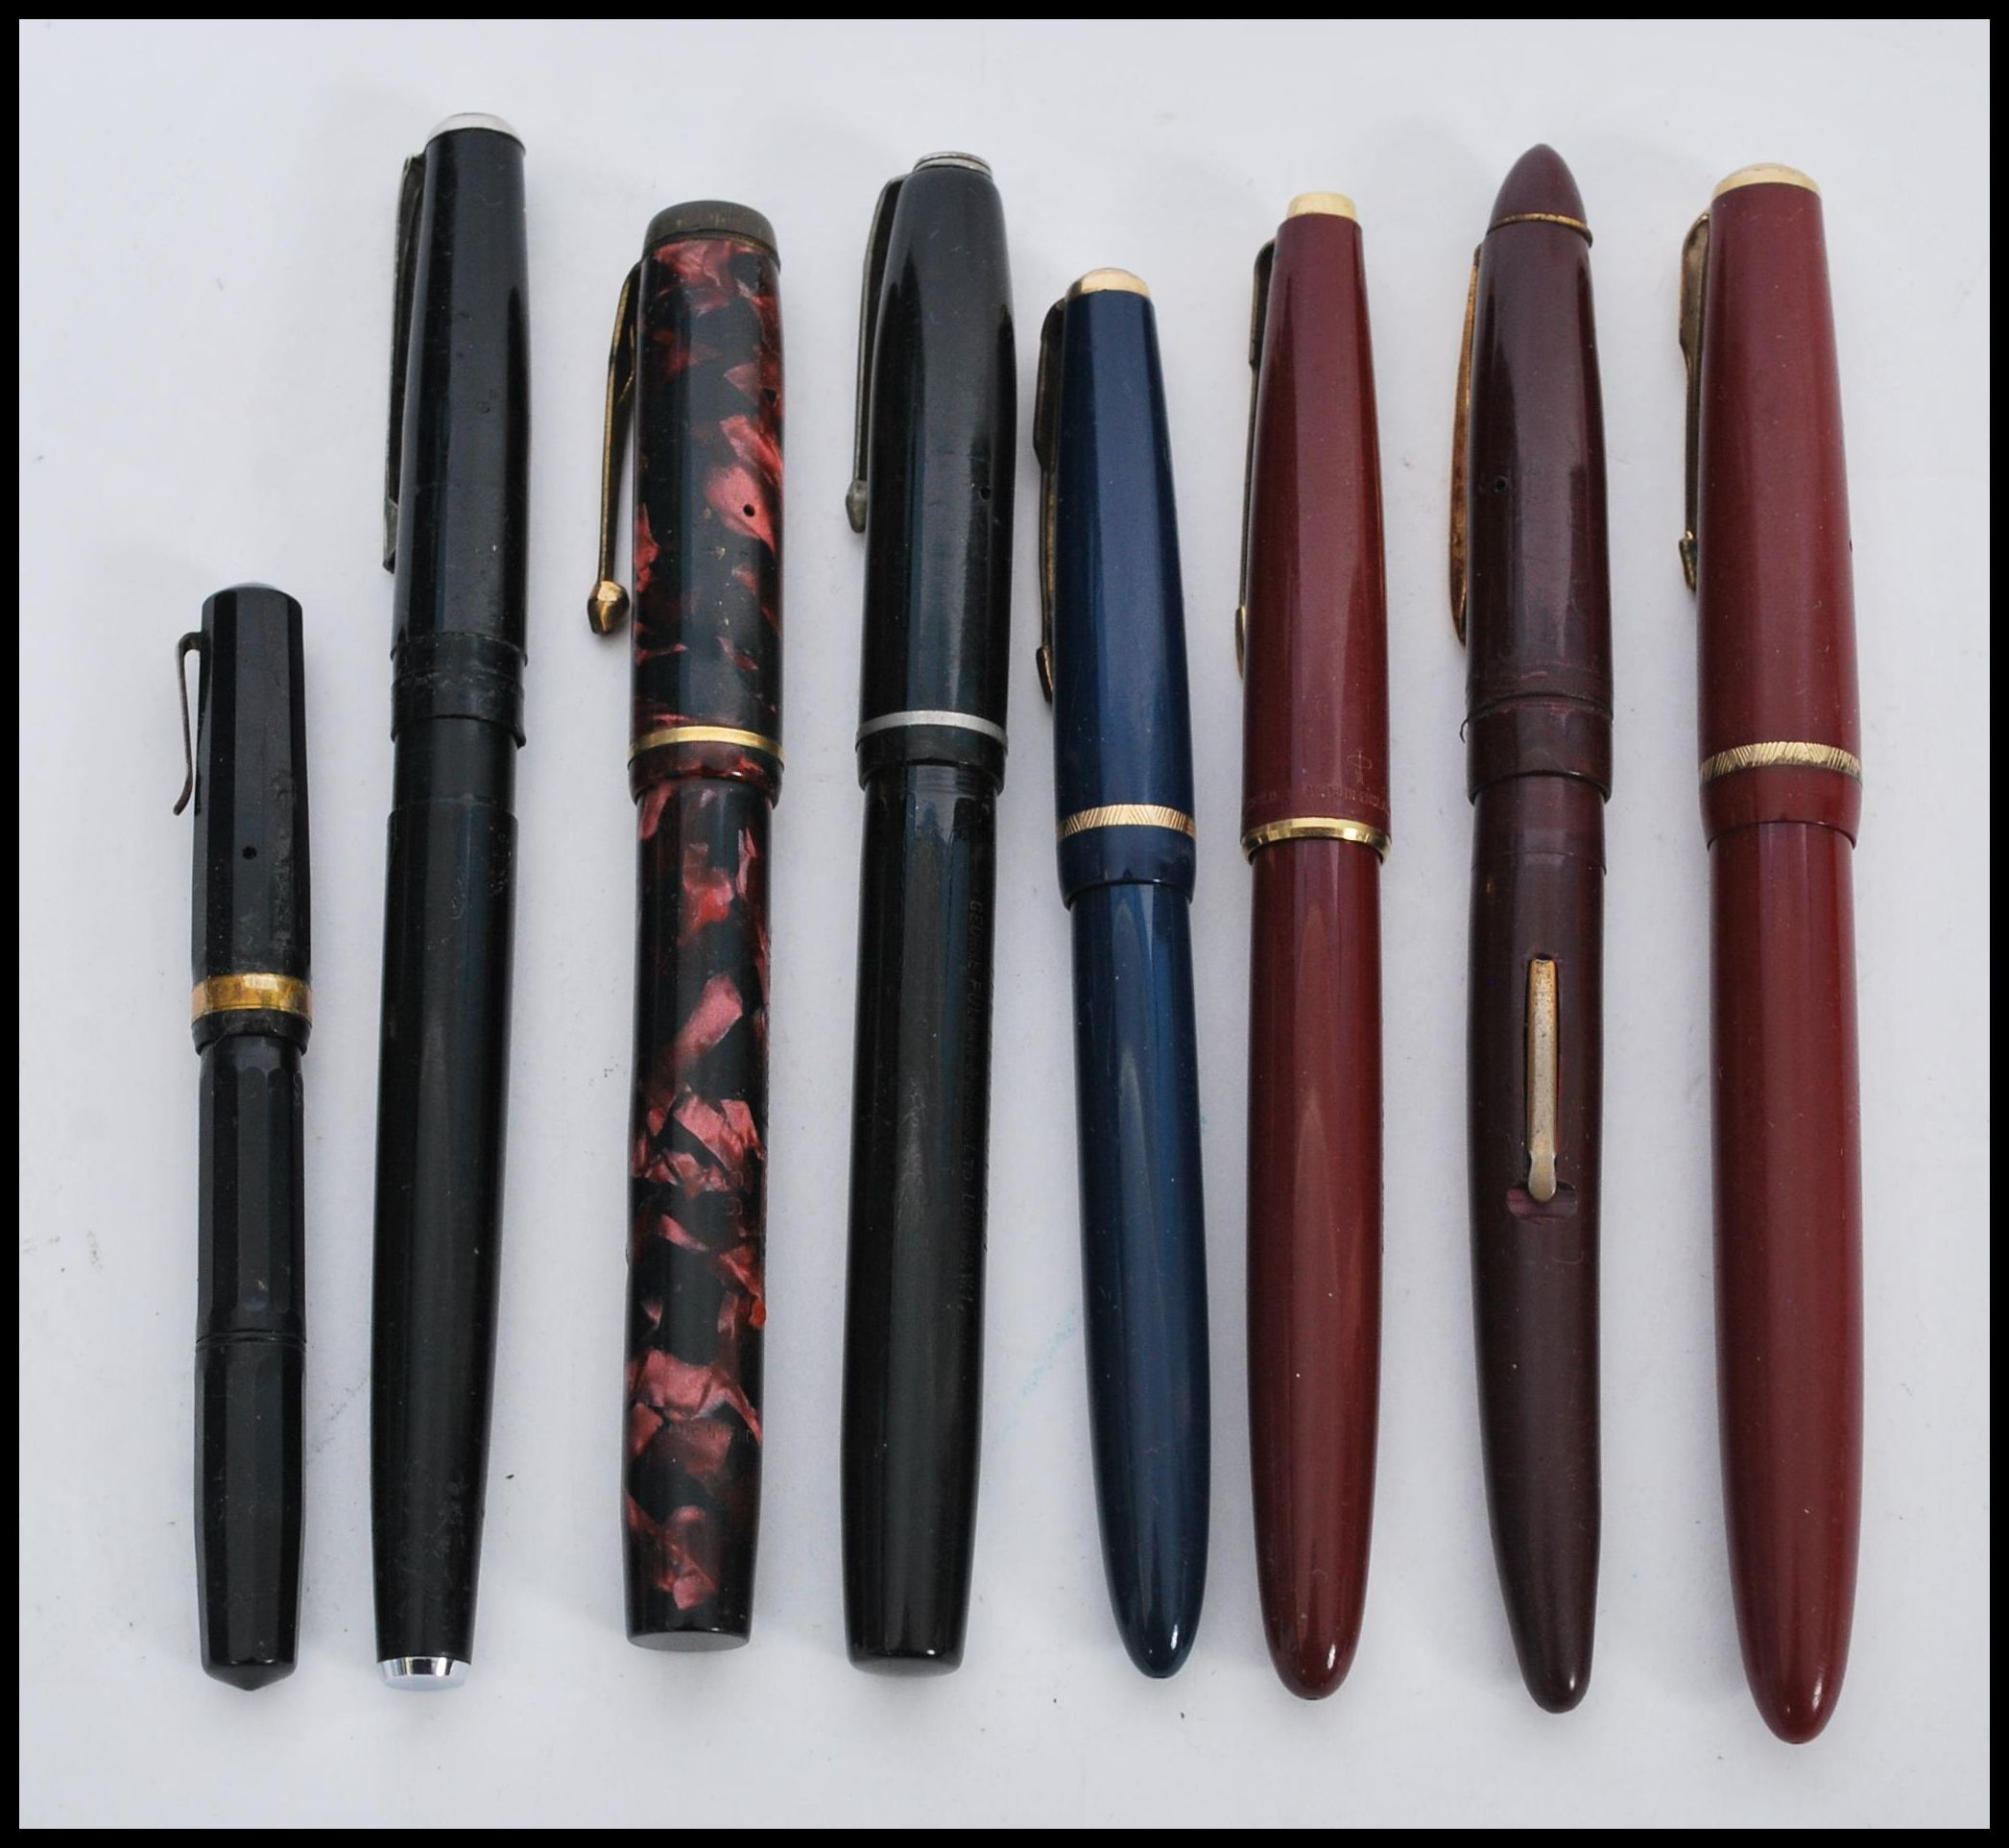 A collection of vintage 20th Century assorted fountain pens